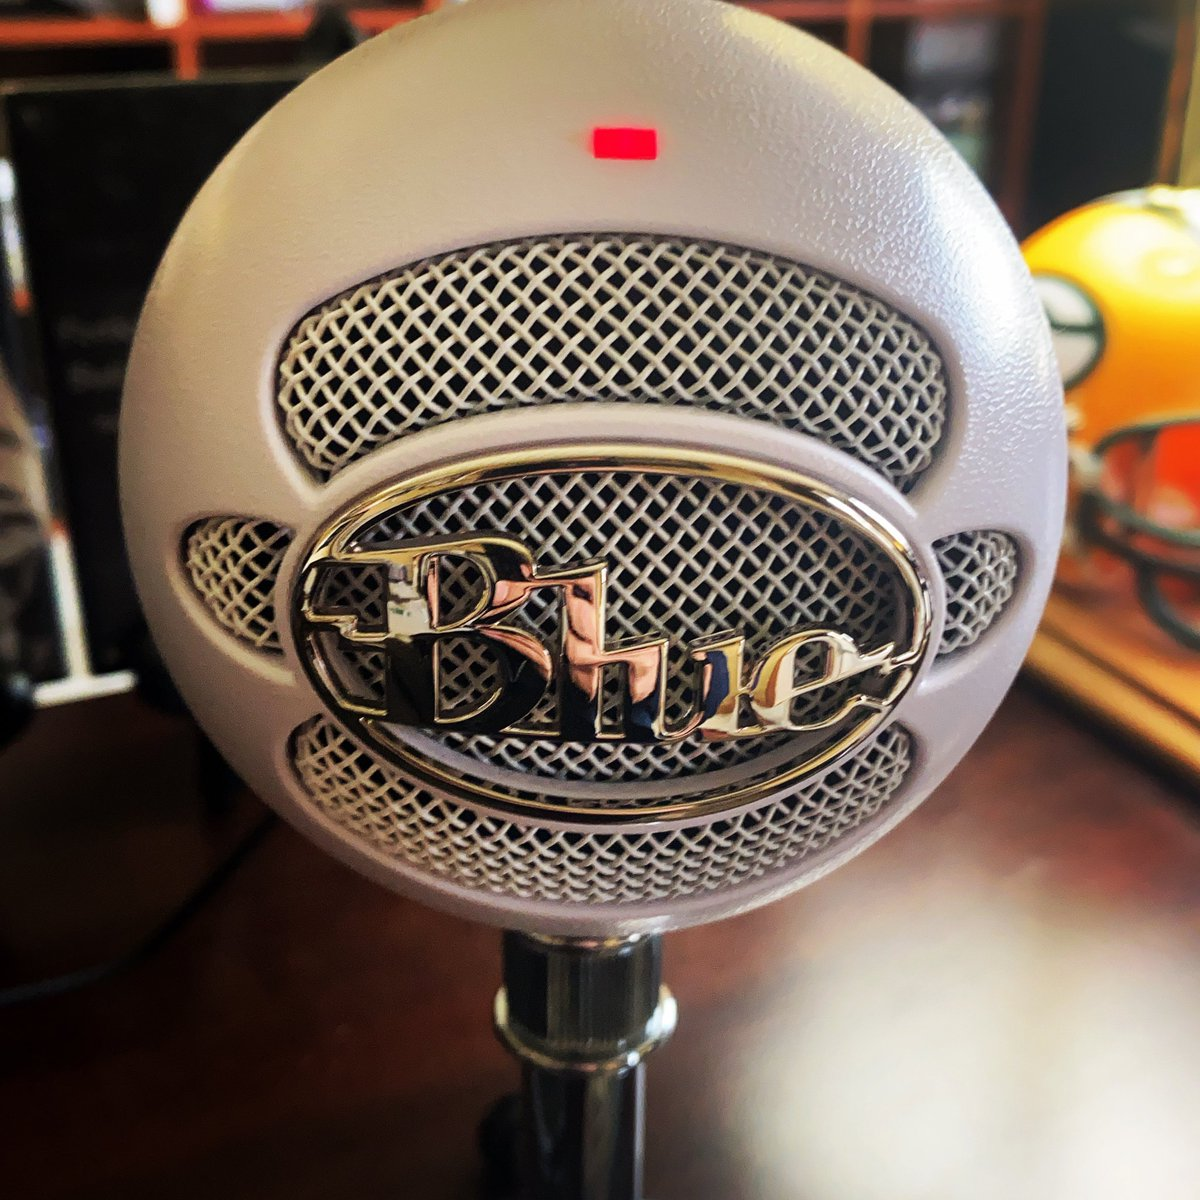 About to record @packers vs @Colts reaction for @FballFirstPod . Always better with my @BlueMicrophones . Go to the @Facebook page at 10am for video! #teamruntheball https://t.co/mQmW6zn9l3